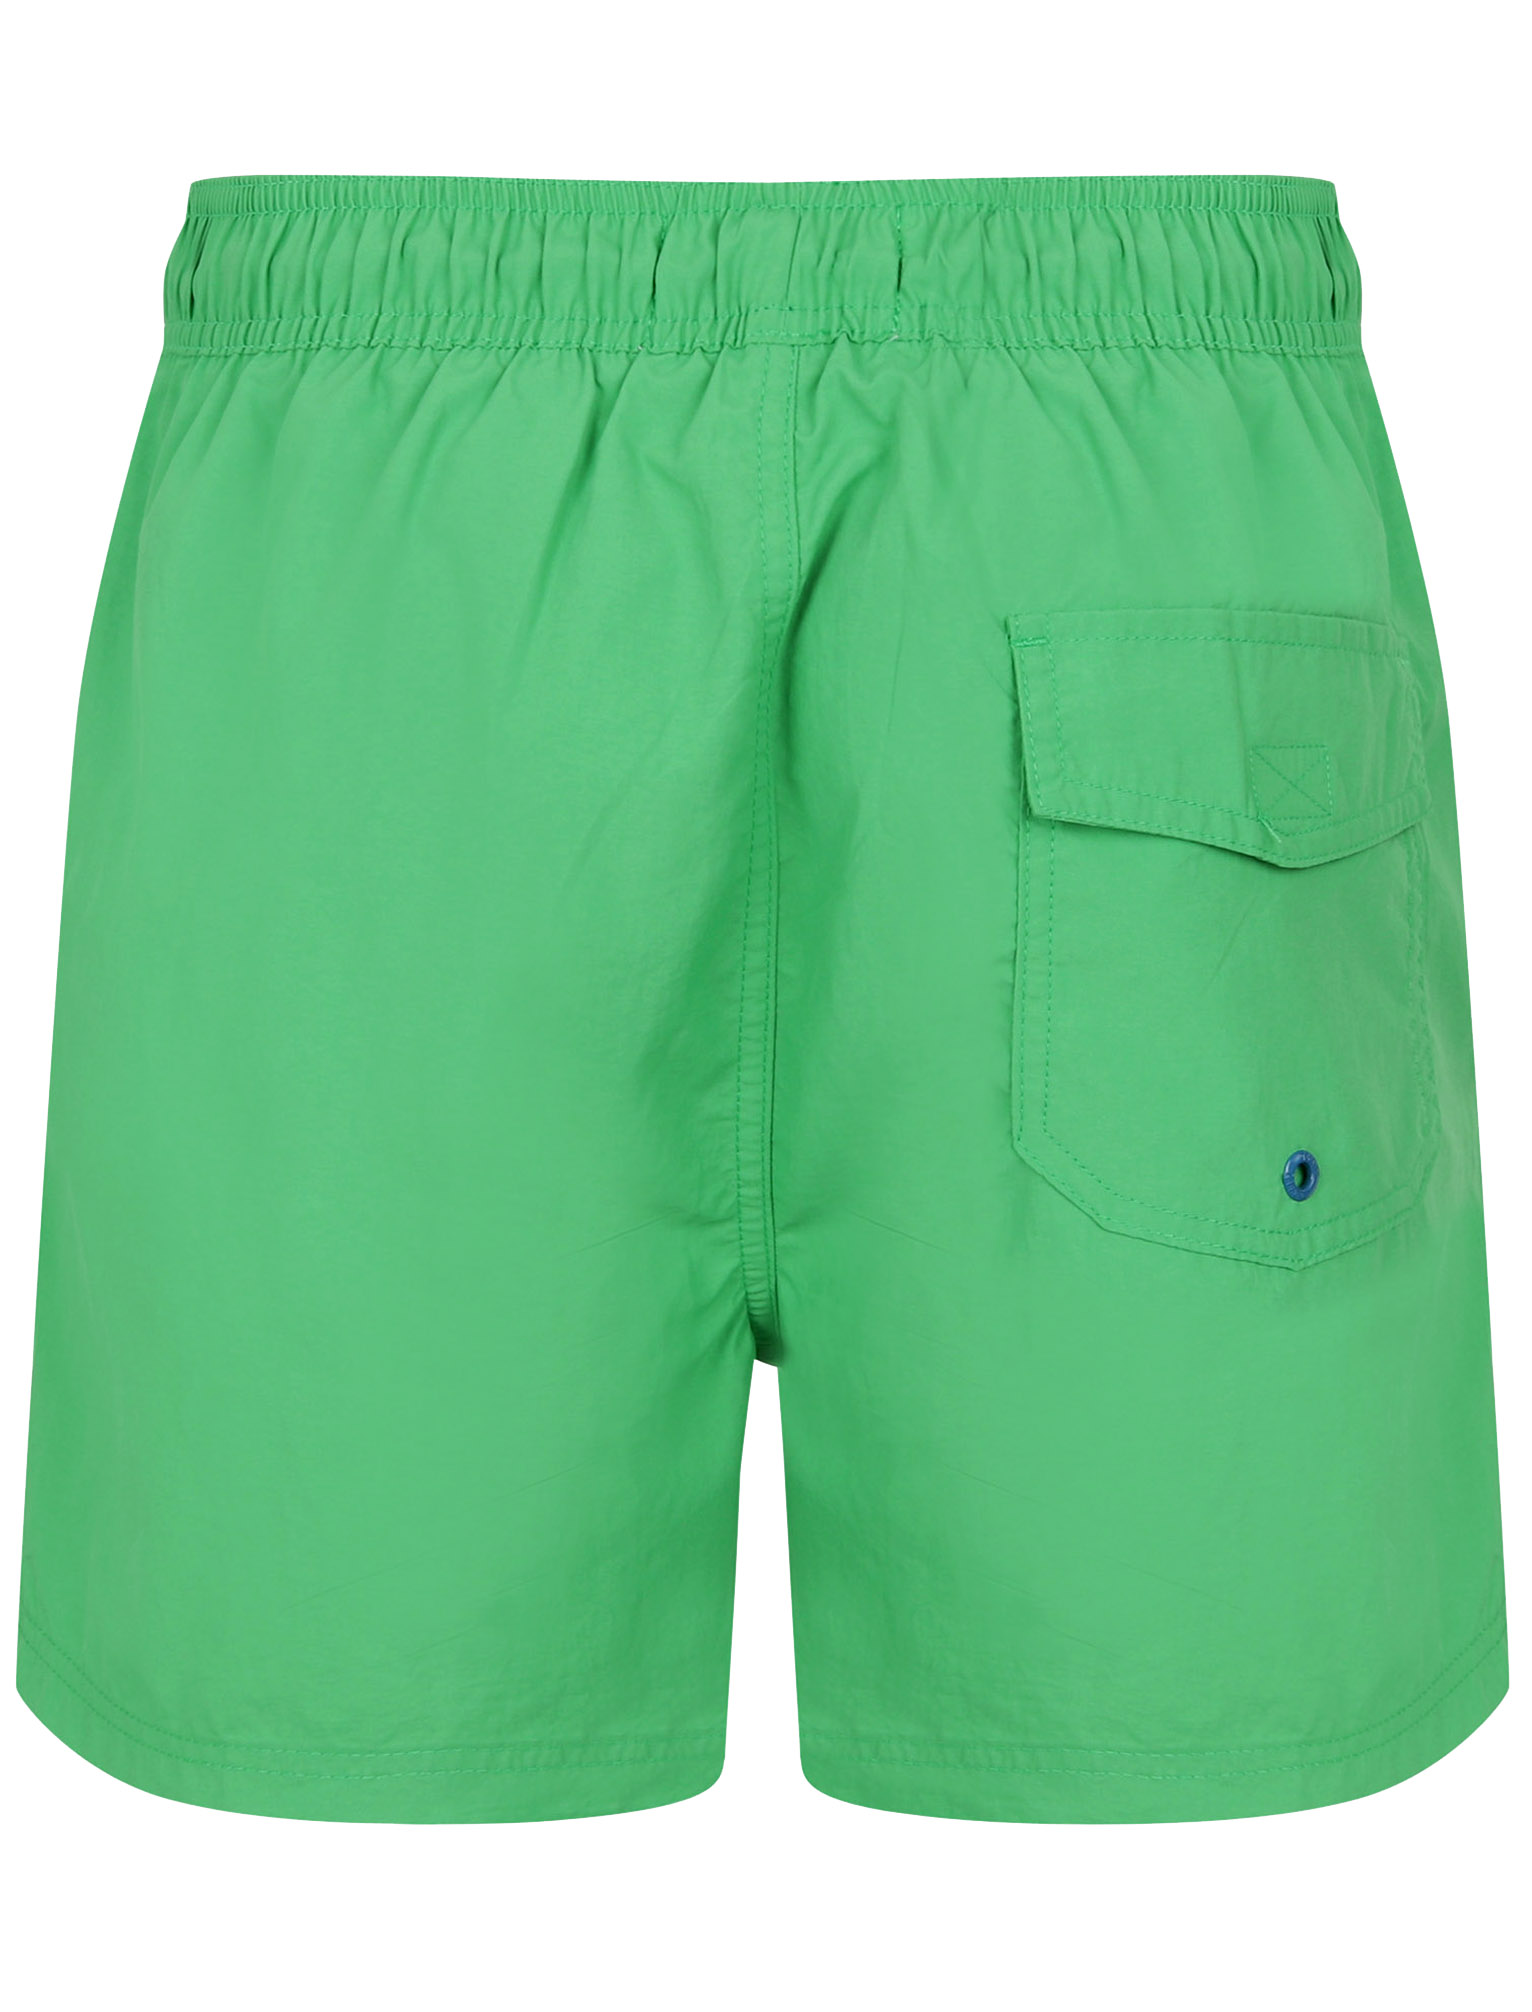 New-Mens-Tokyo-Laundry-Branded-Classic-Soft-Swim-Shorts-With-Pockets-Size-S-XXL thumbnail 29